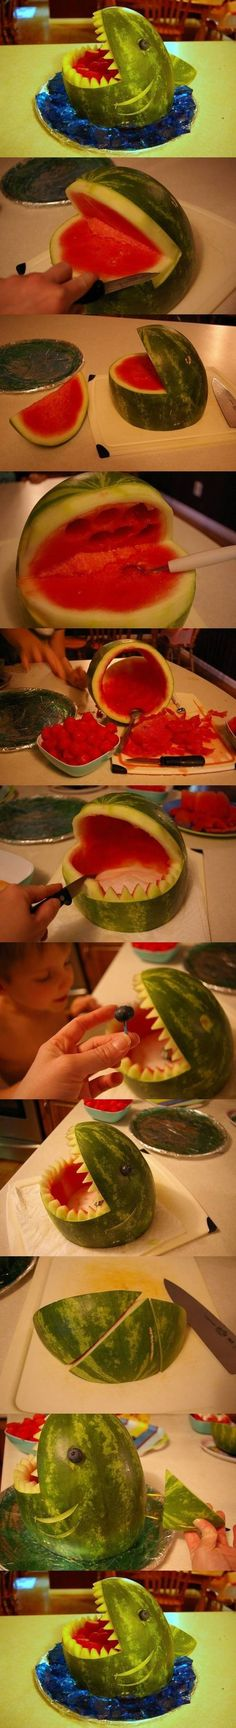 DIY Watermelon Shark Carving Internet Tutorial DIY Projects / UsefulDIY.com on imgfave